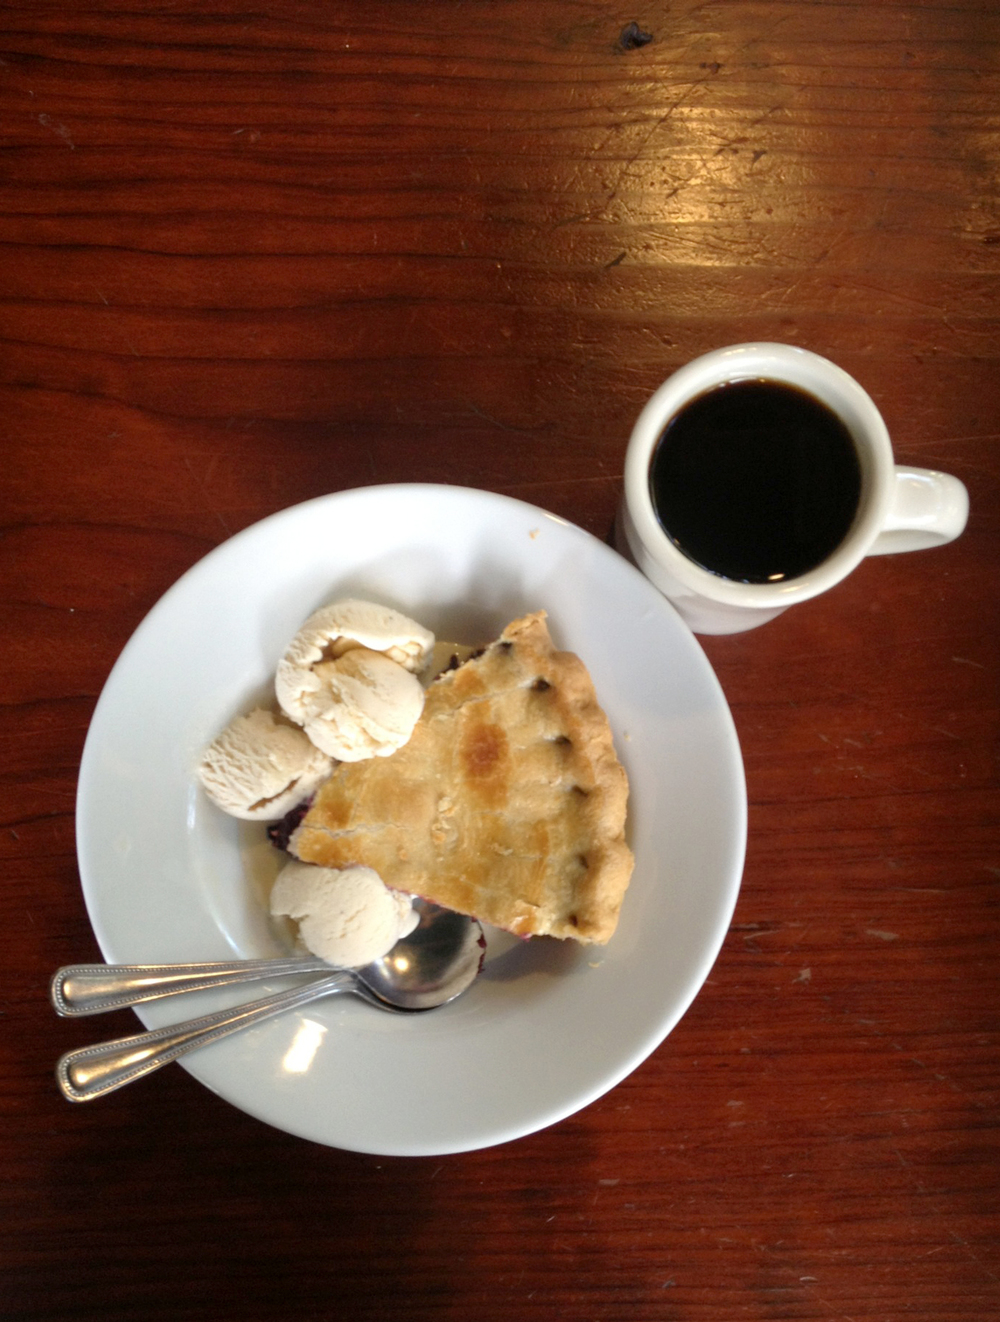 Blackberry pie and black coffee.  Agent Dale Cooper  would be so proud.  Thank you  Alice's  for satisfying my appetite.